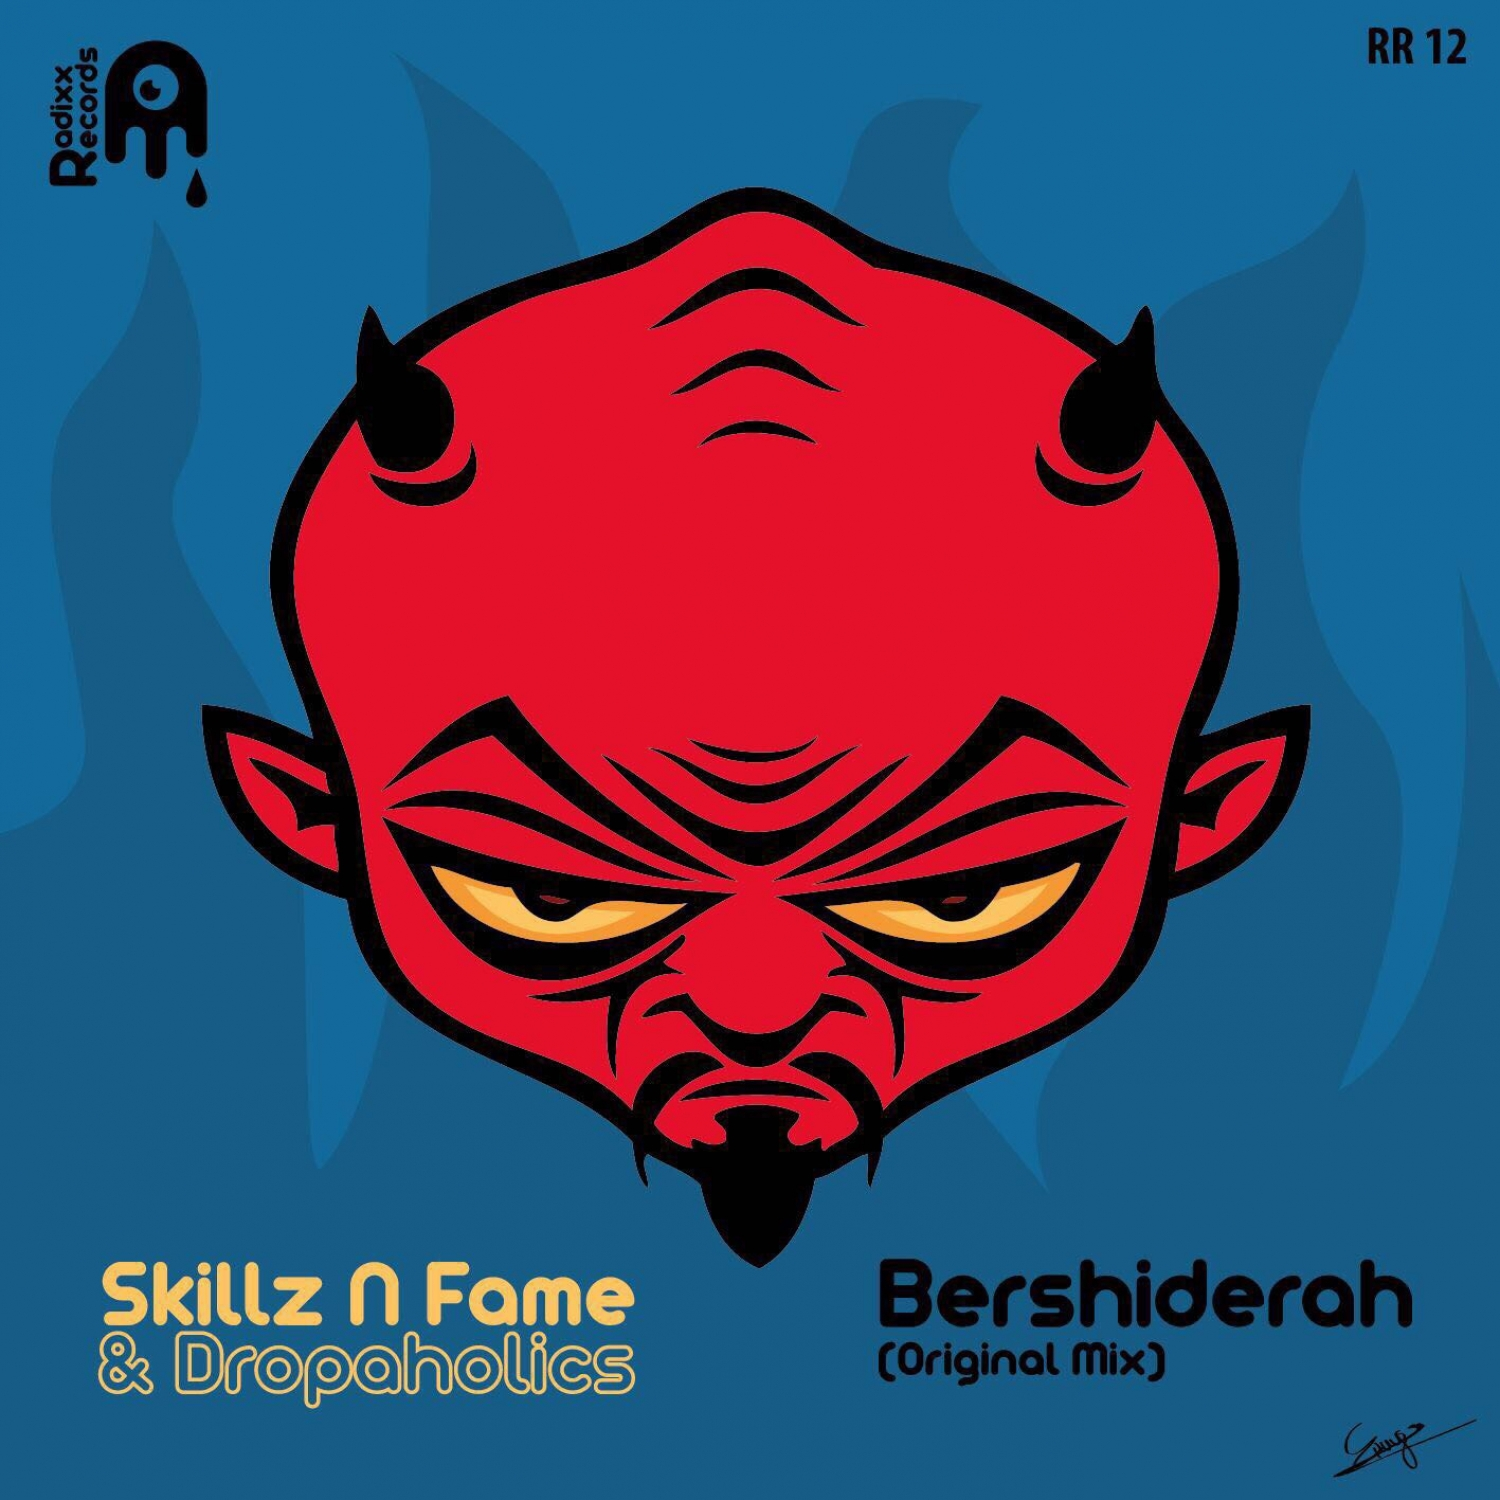 Skillz N Fame & Dropaholics - Bershiderah (feat. Dropaholics) (Original Mix)